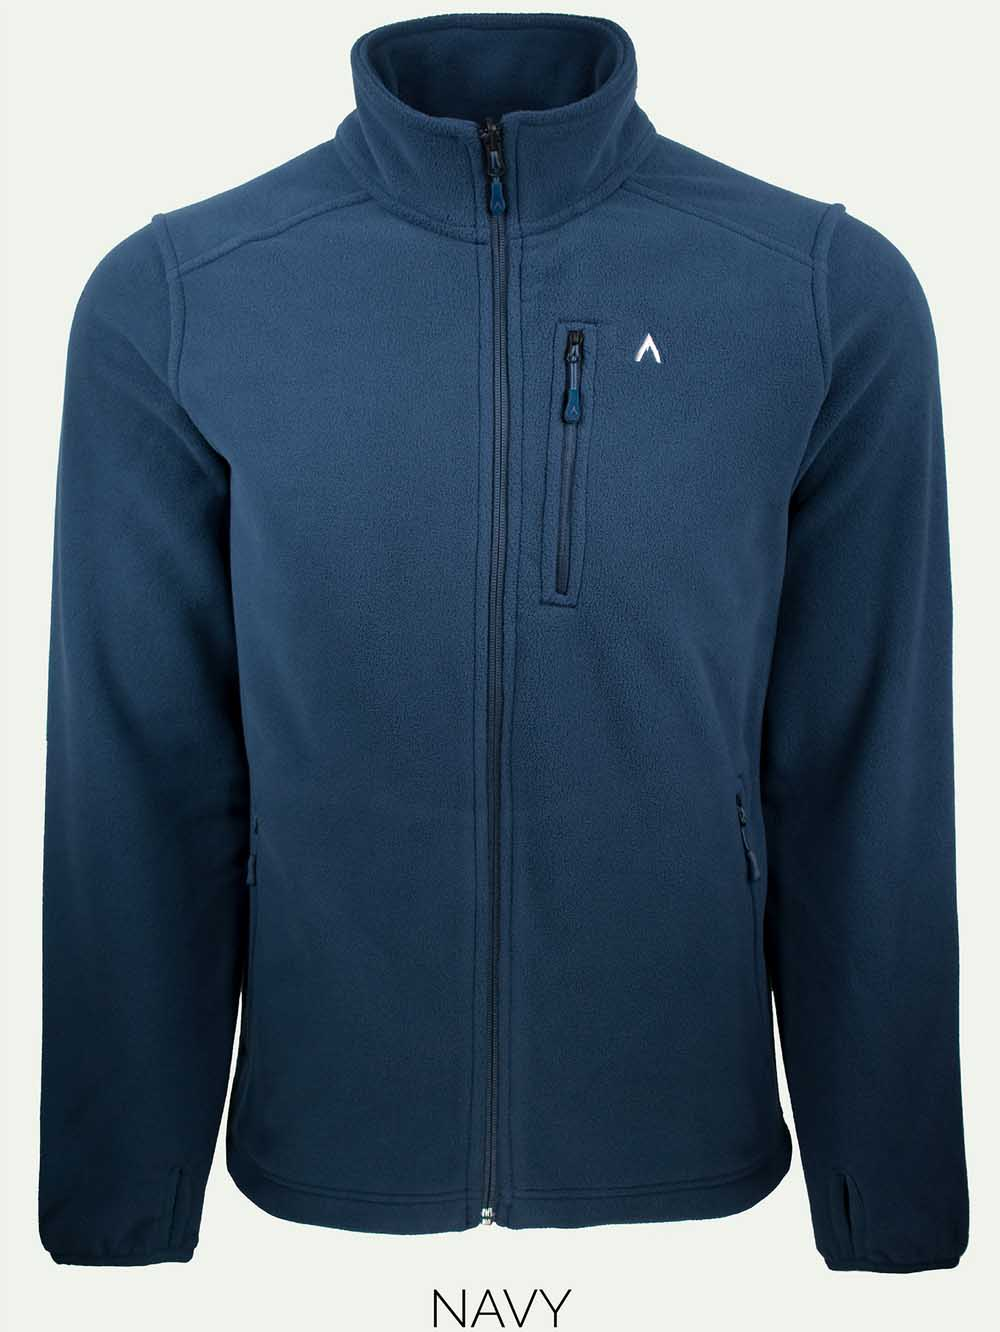 image terracea-landing-fleece-jacket-navy-jpg